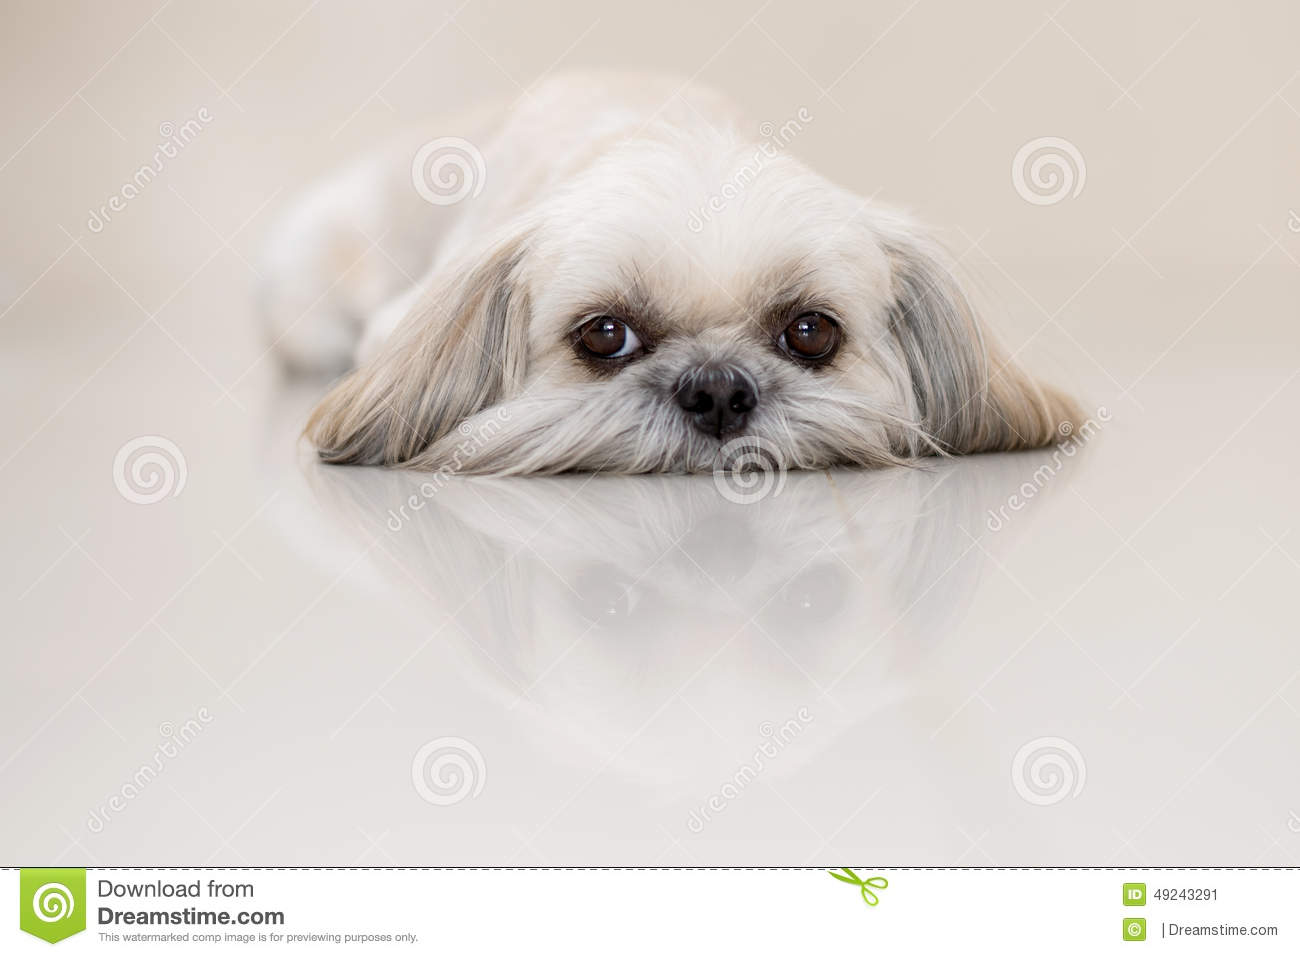 Shih Tzu Dog The Little Lion Stock Image Image Of Brown Name 49243291